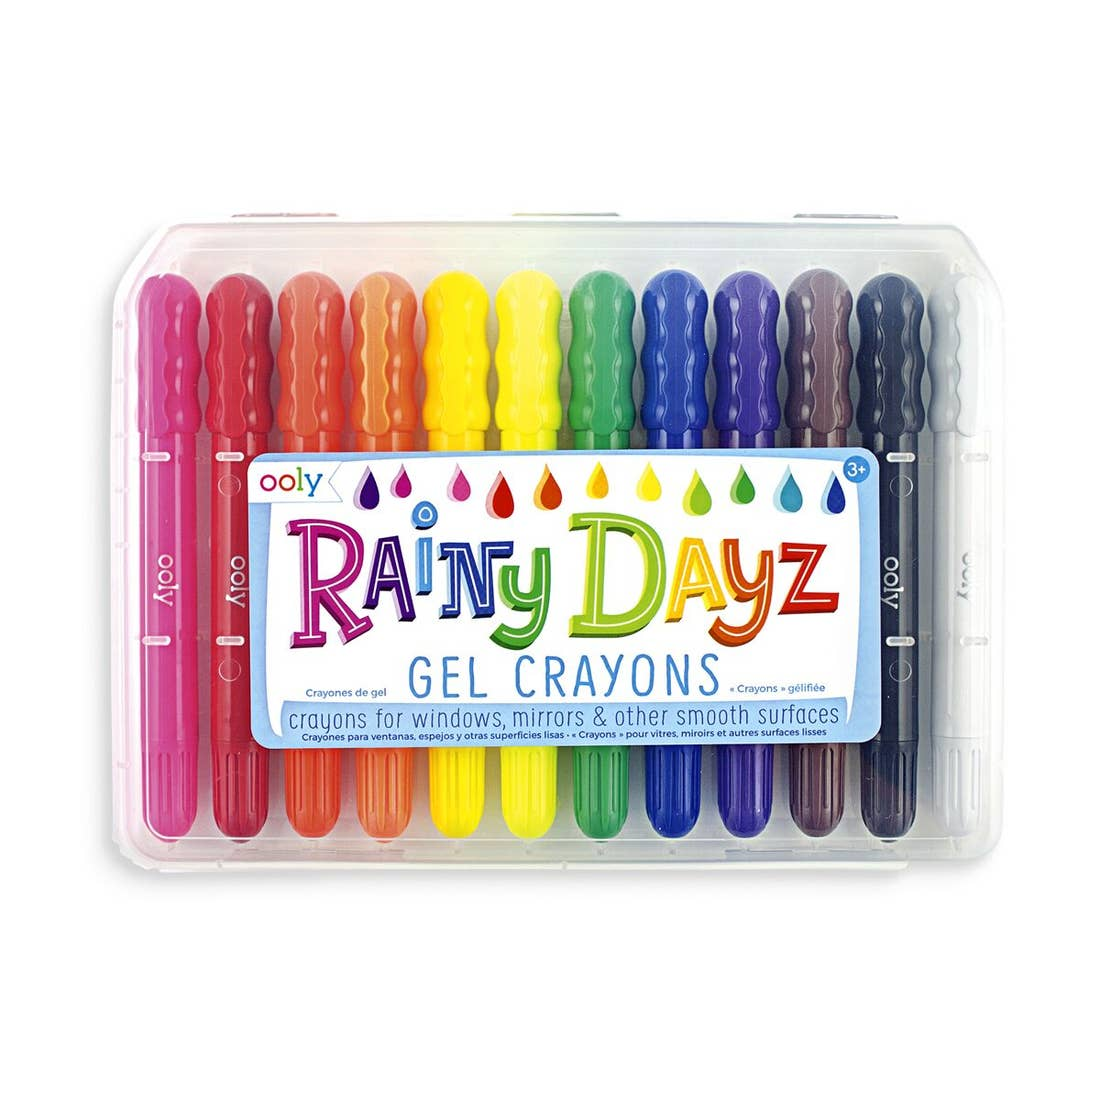 Rainy Day Gel Crayons